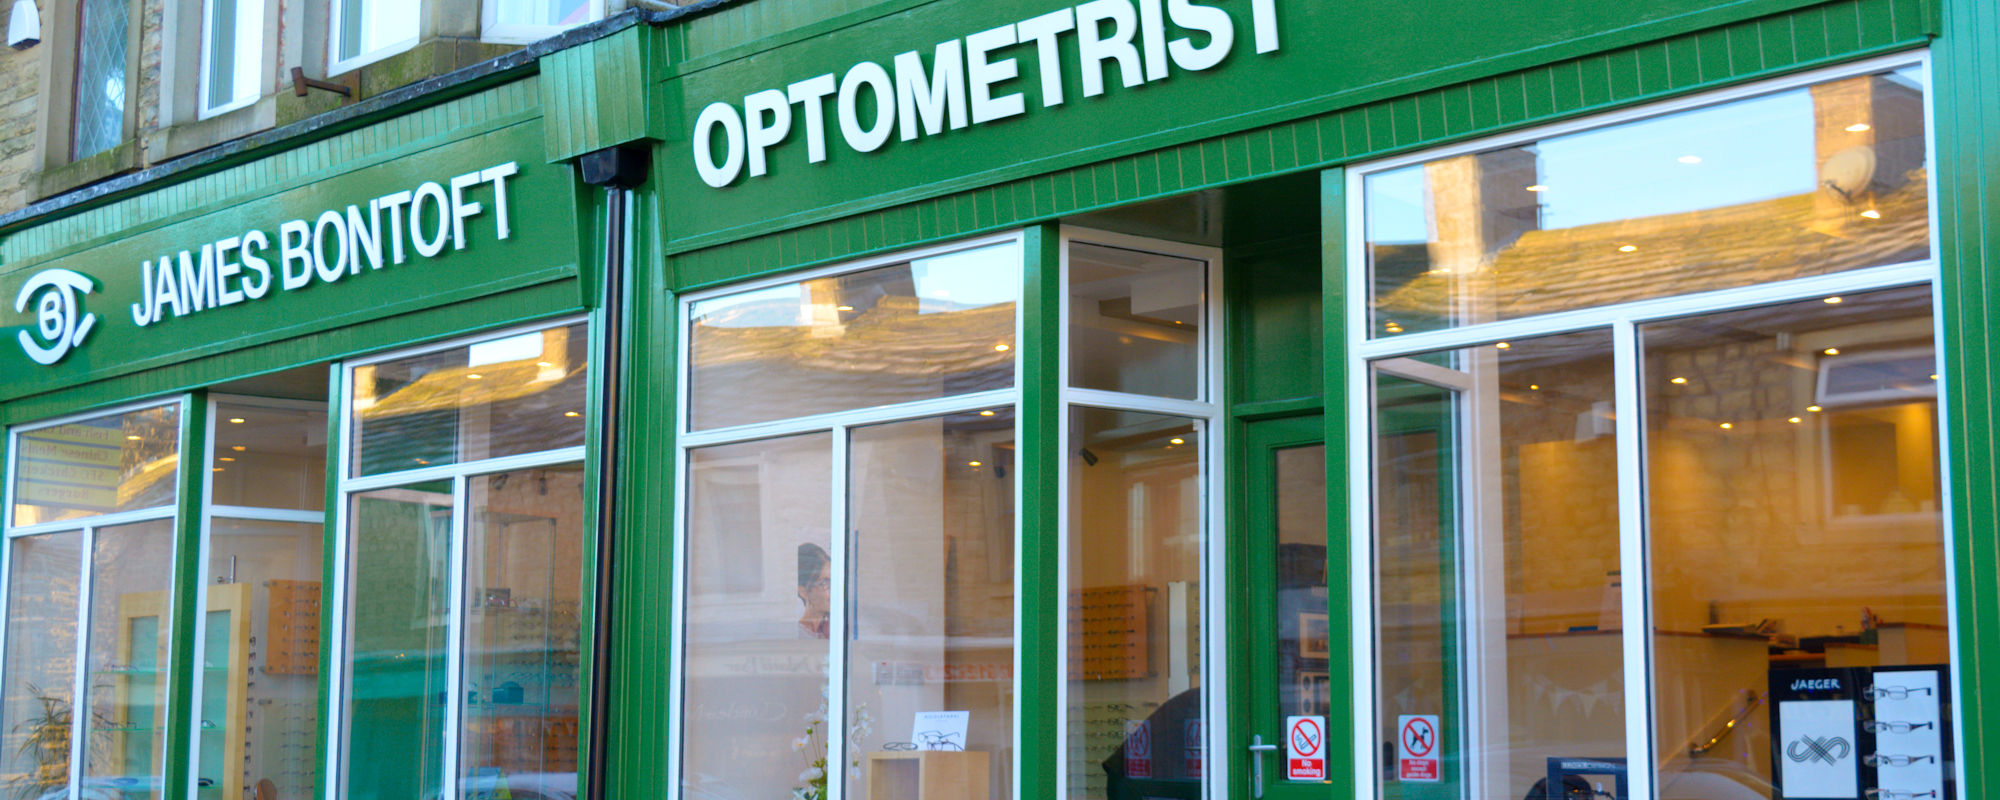 Opticians in Barnoldswick